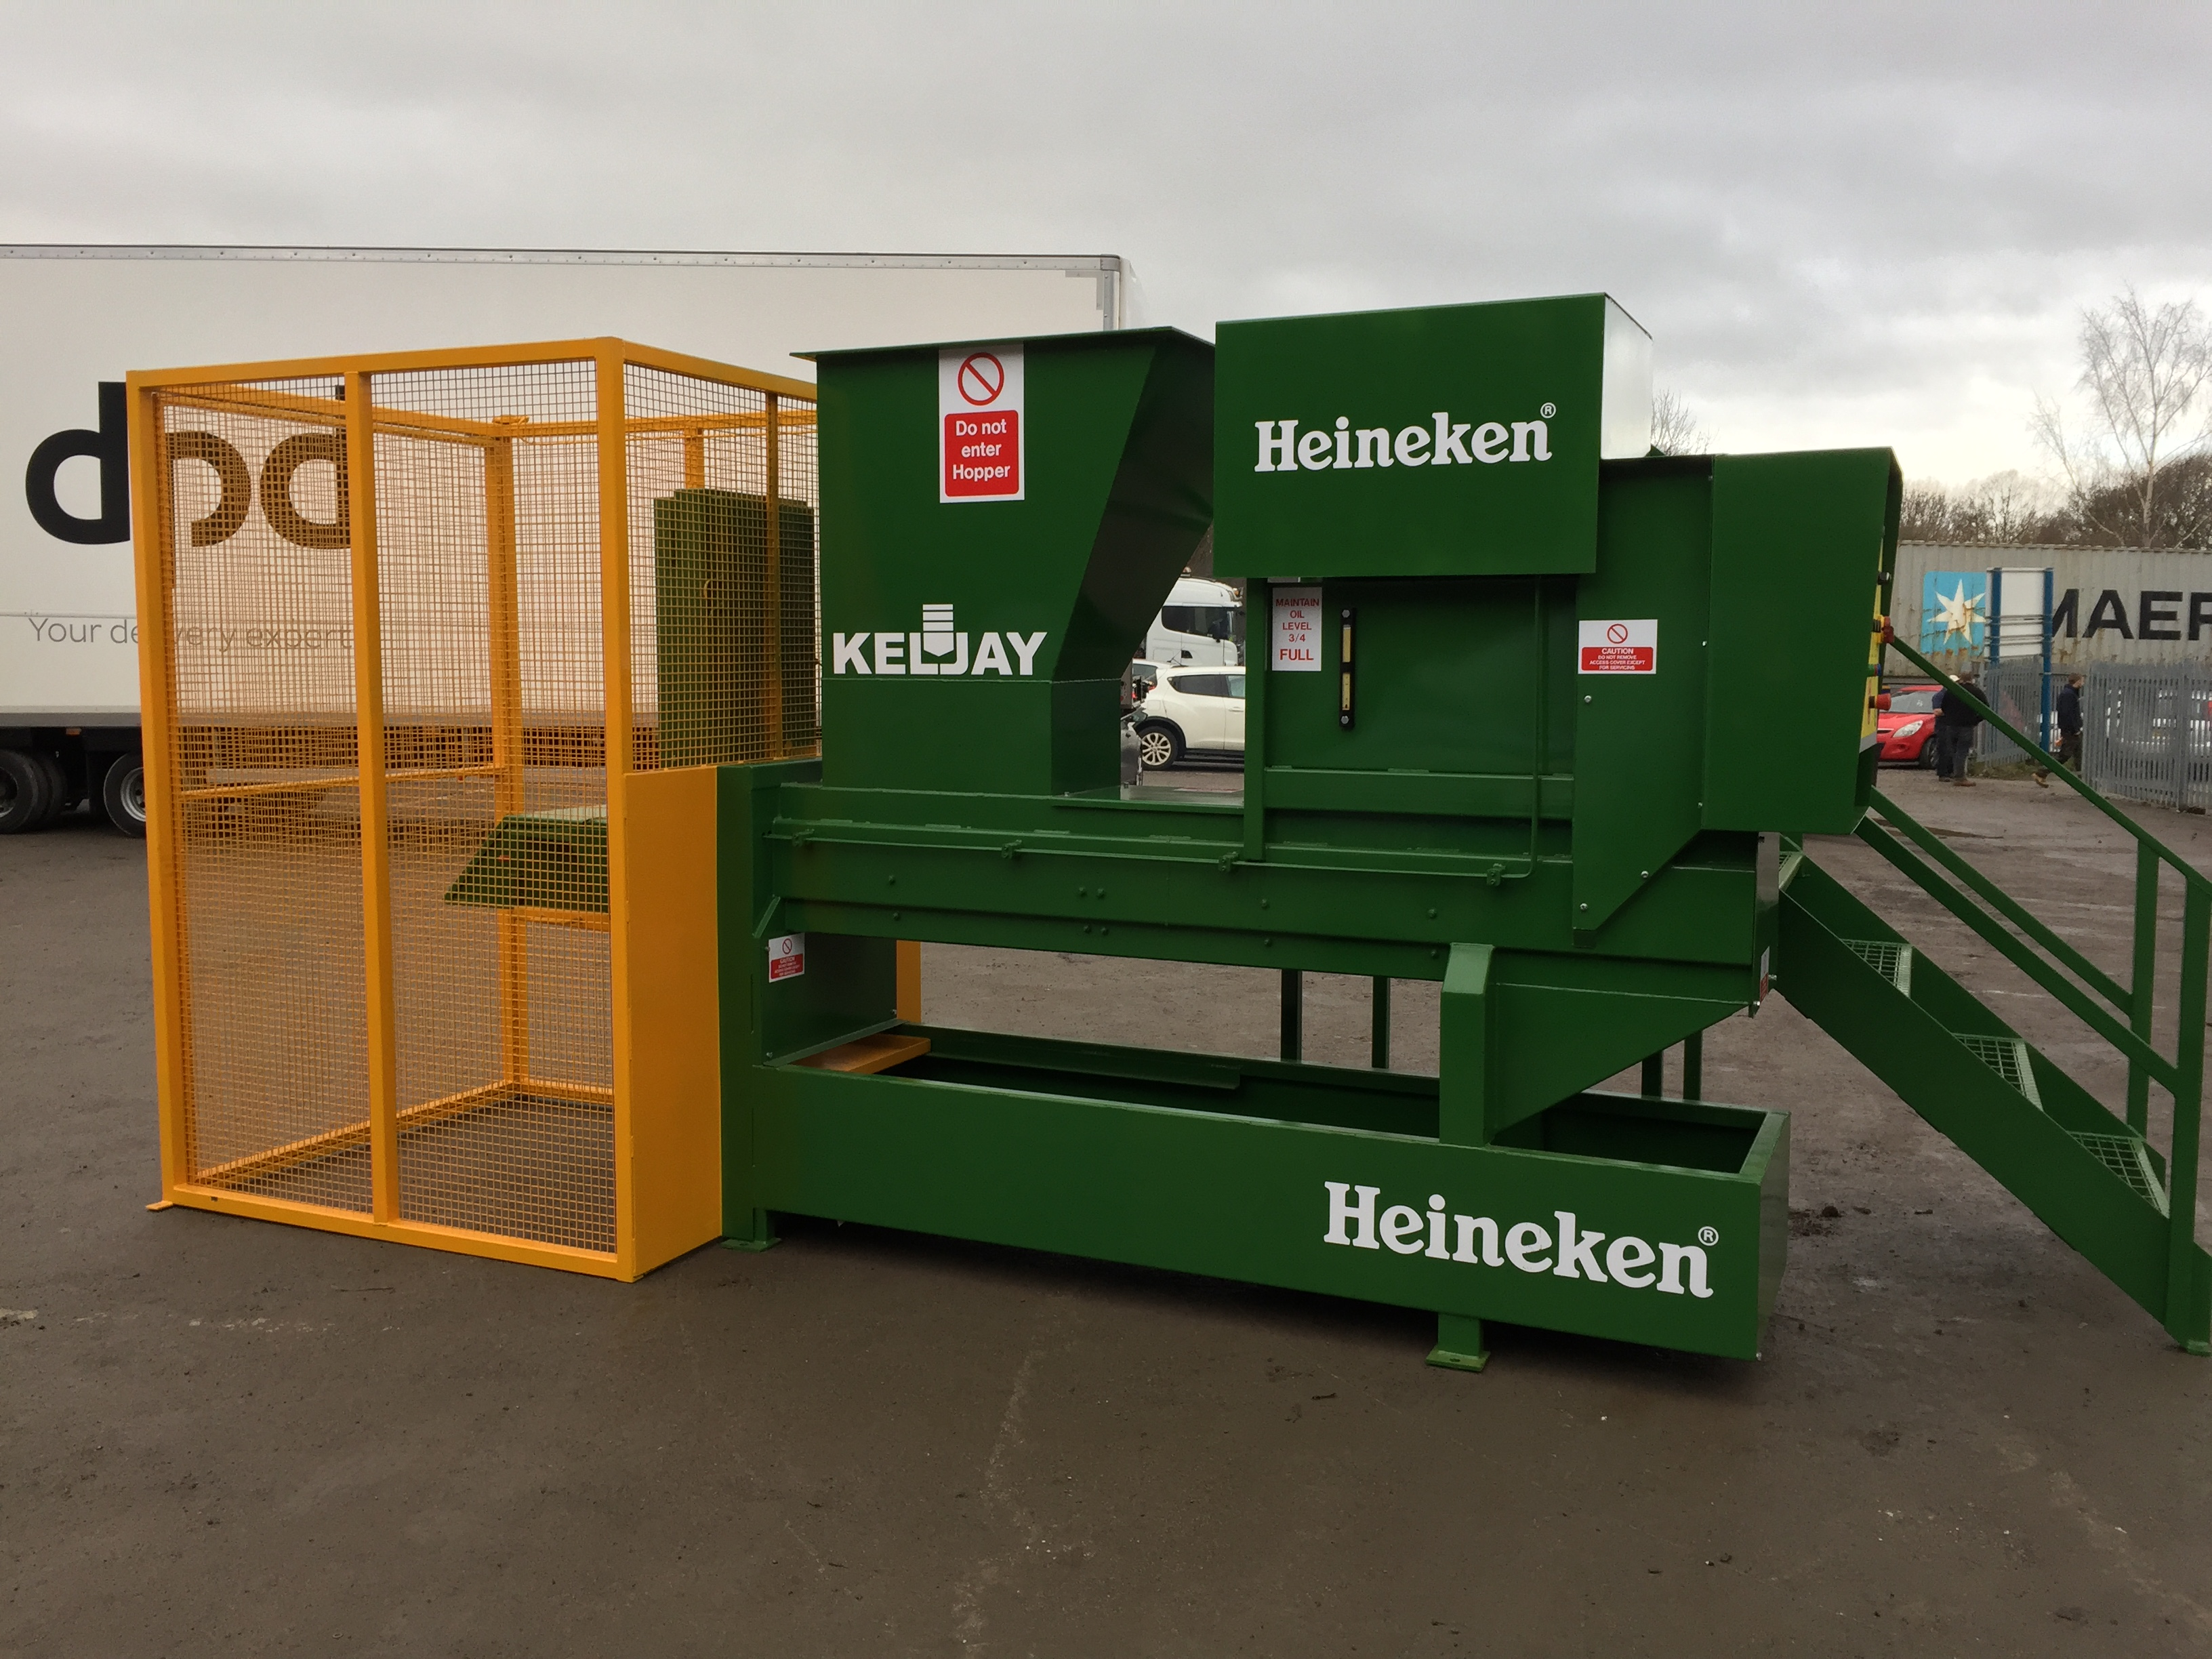 Glass Crusher for Heineken!